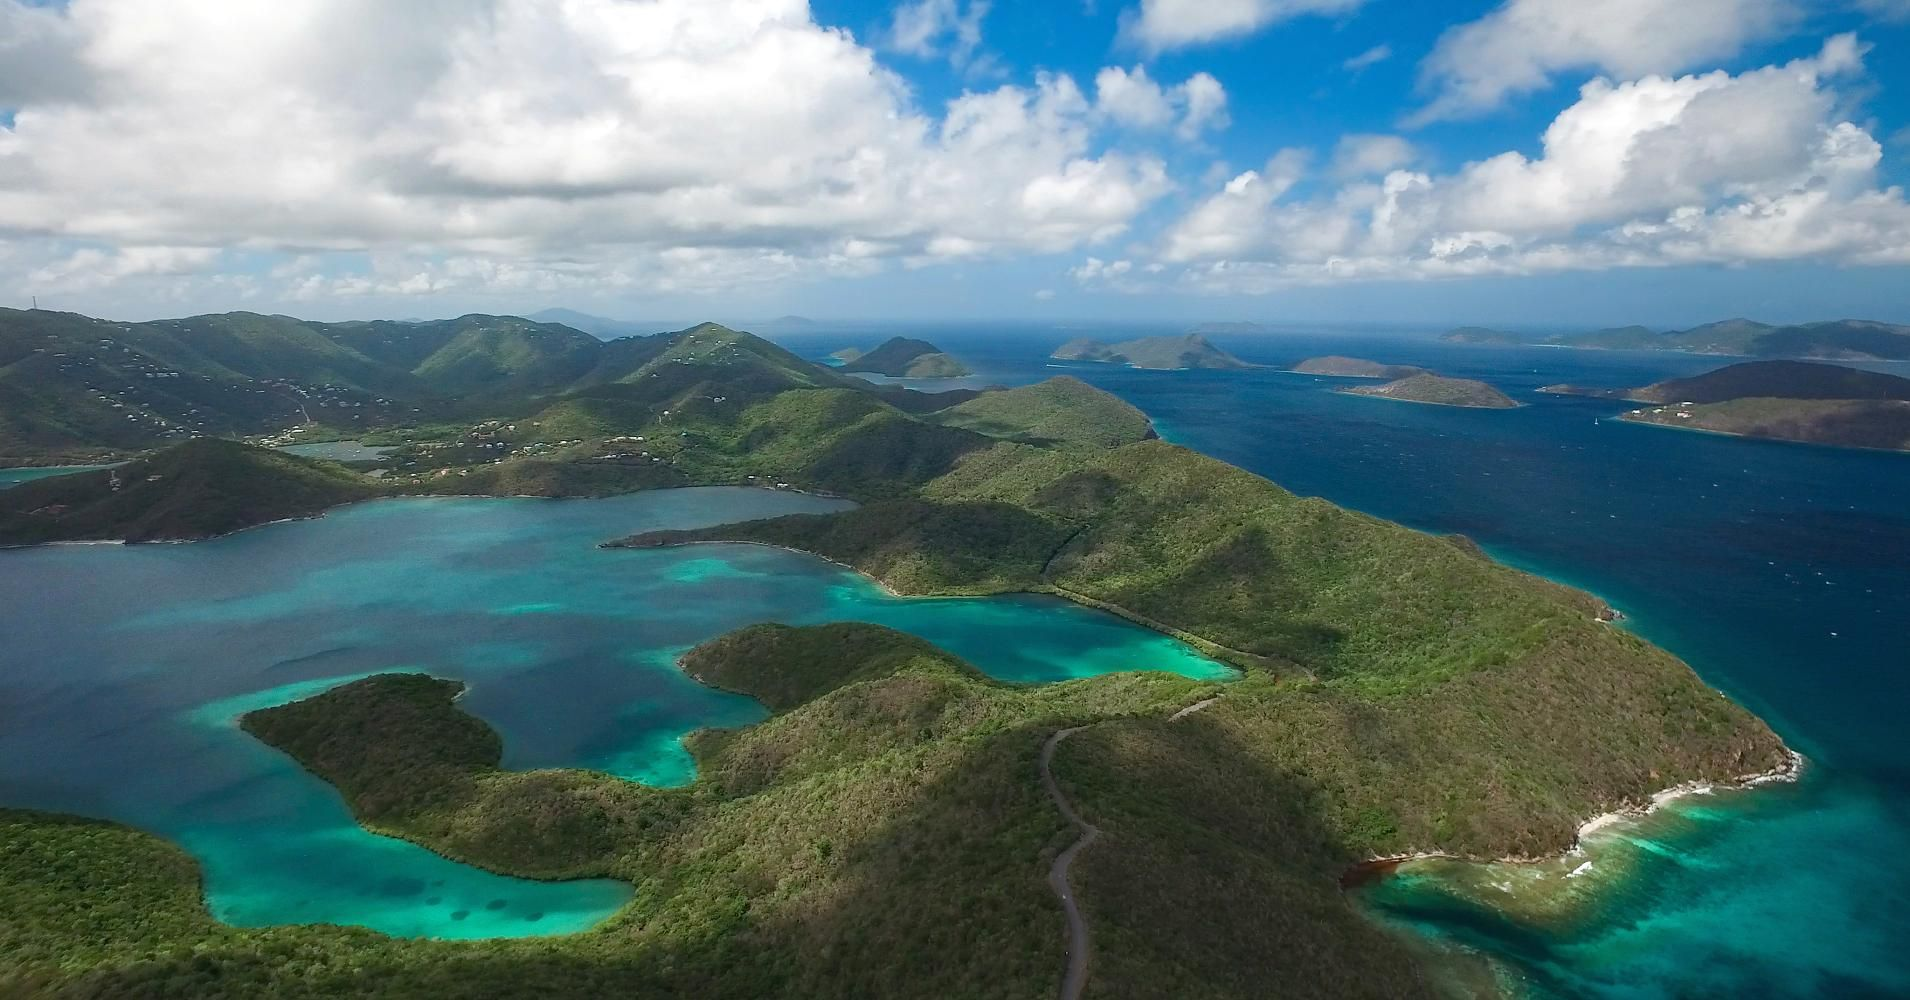 You could receive $300 to visit a beautiful Caribbean archipelago.